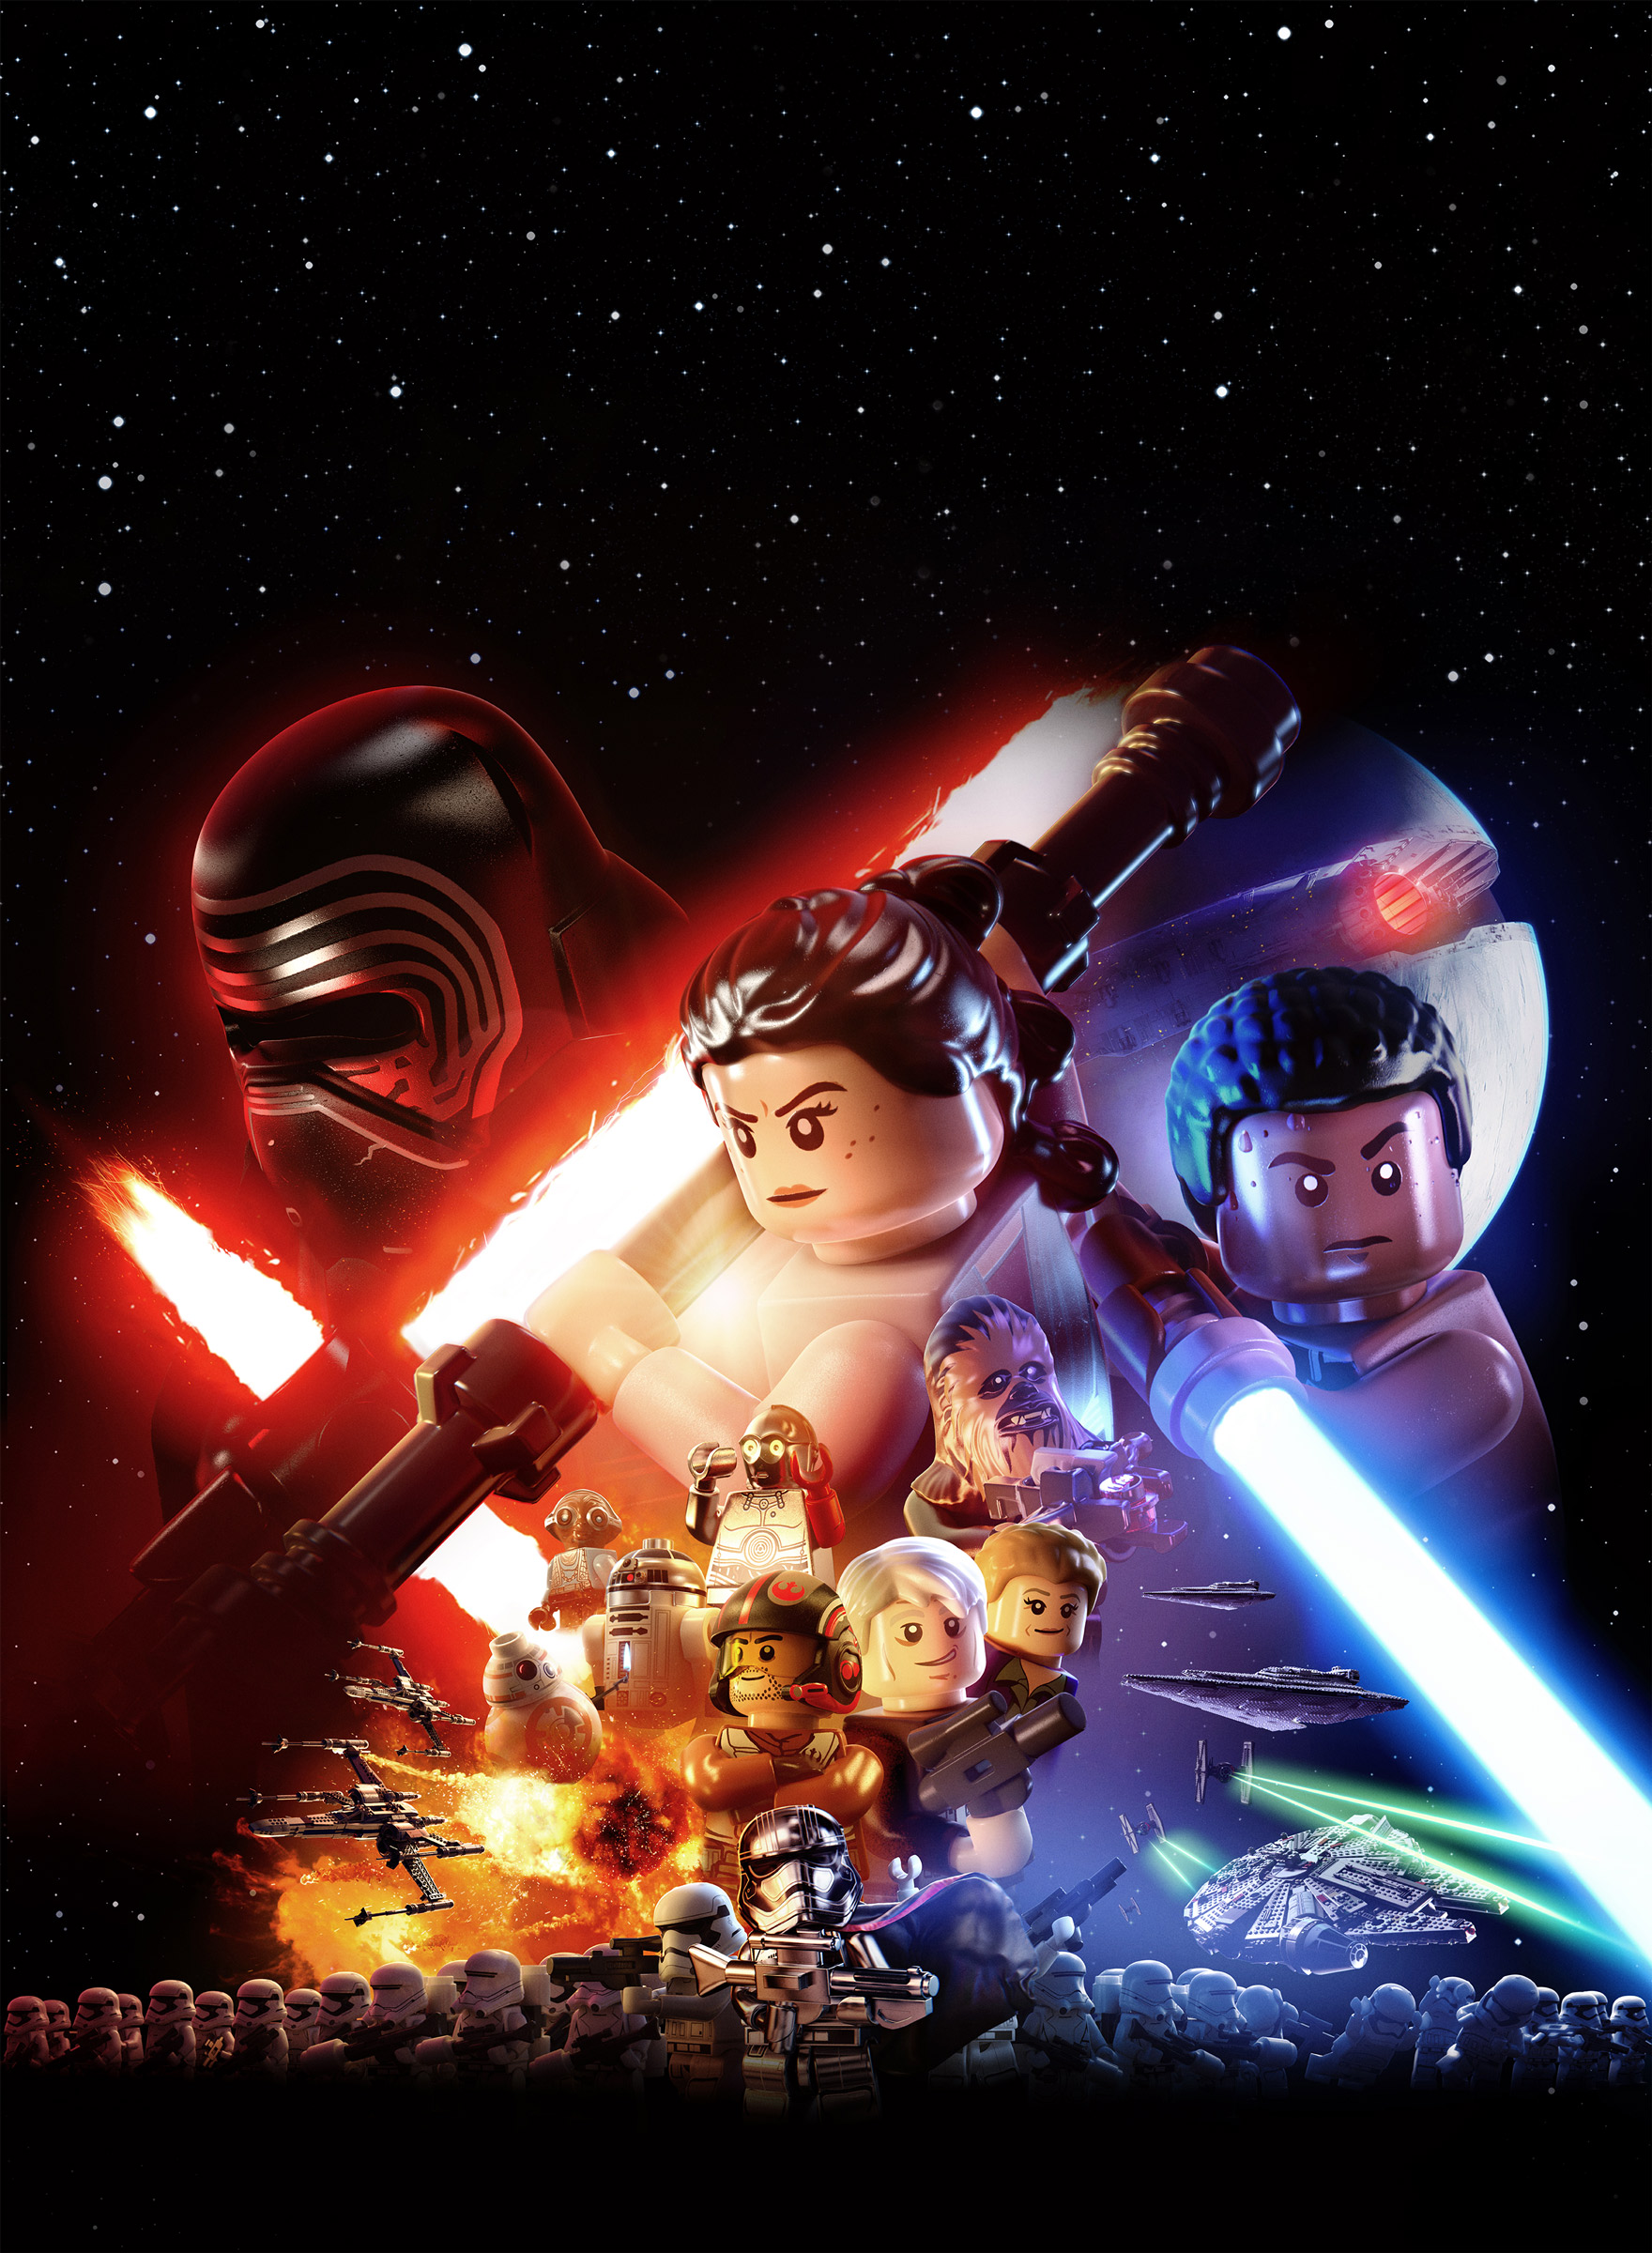 Calling All Jedi Masters and Master Builders: Announcing LEGO Star Wars: The Force Awakens